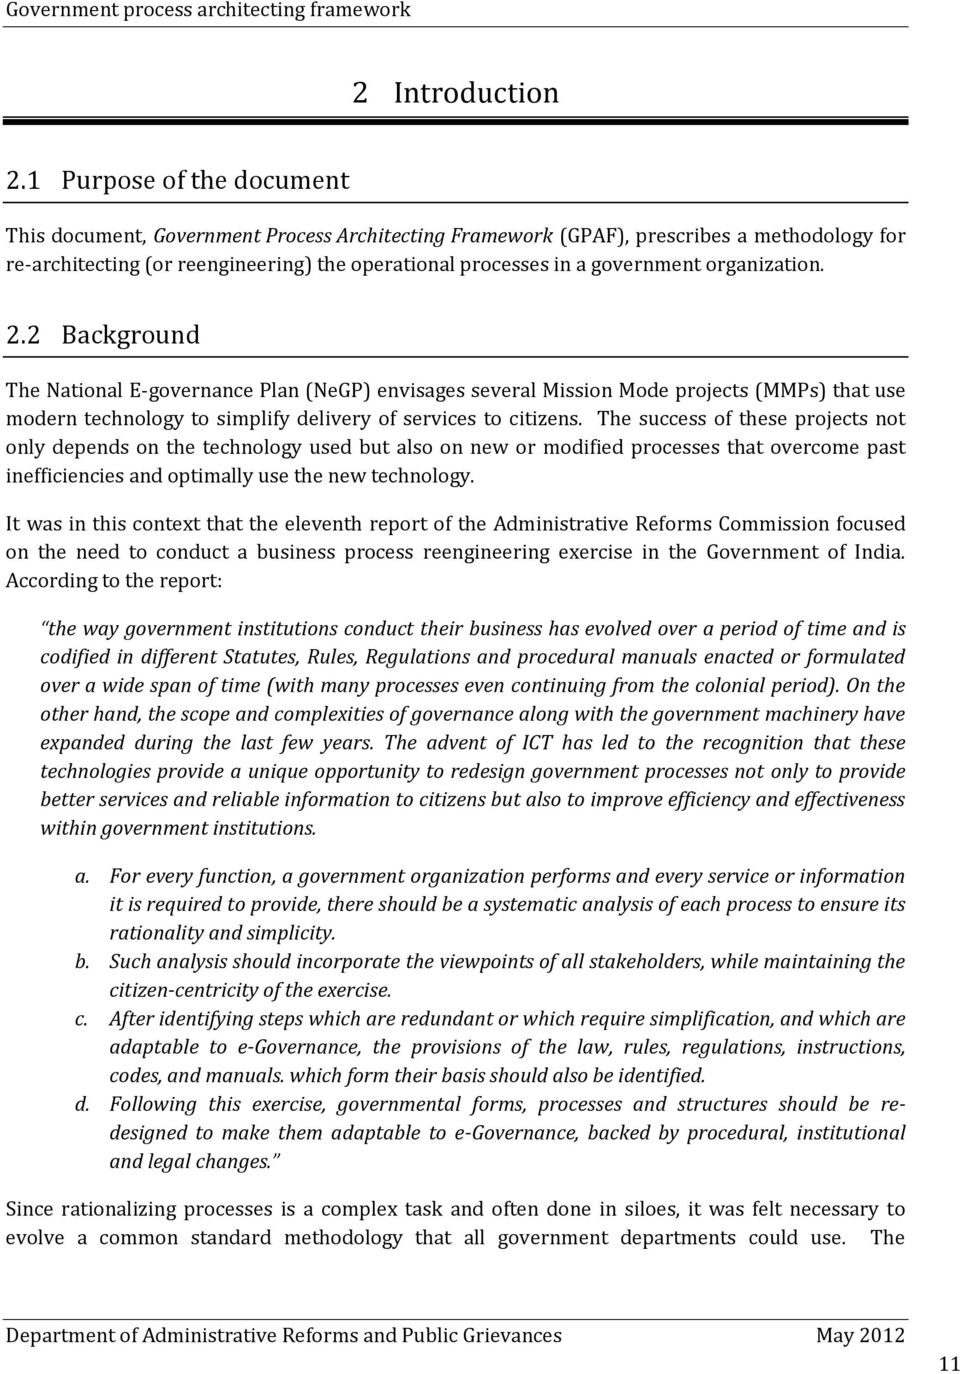 organization. 2.2 Background The National E-governance Plan (NeGP) envisages several Mission Mode projects (MMPs) that use modern technology to simplify delivery of services to citizens.